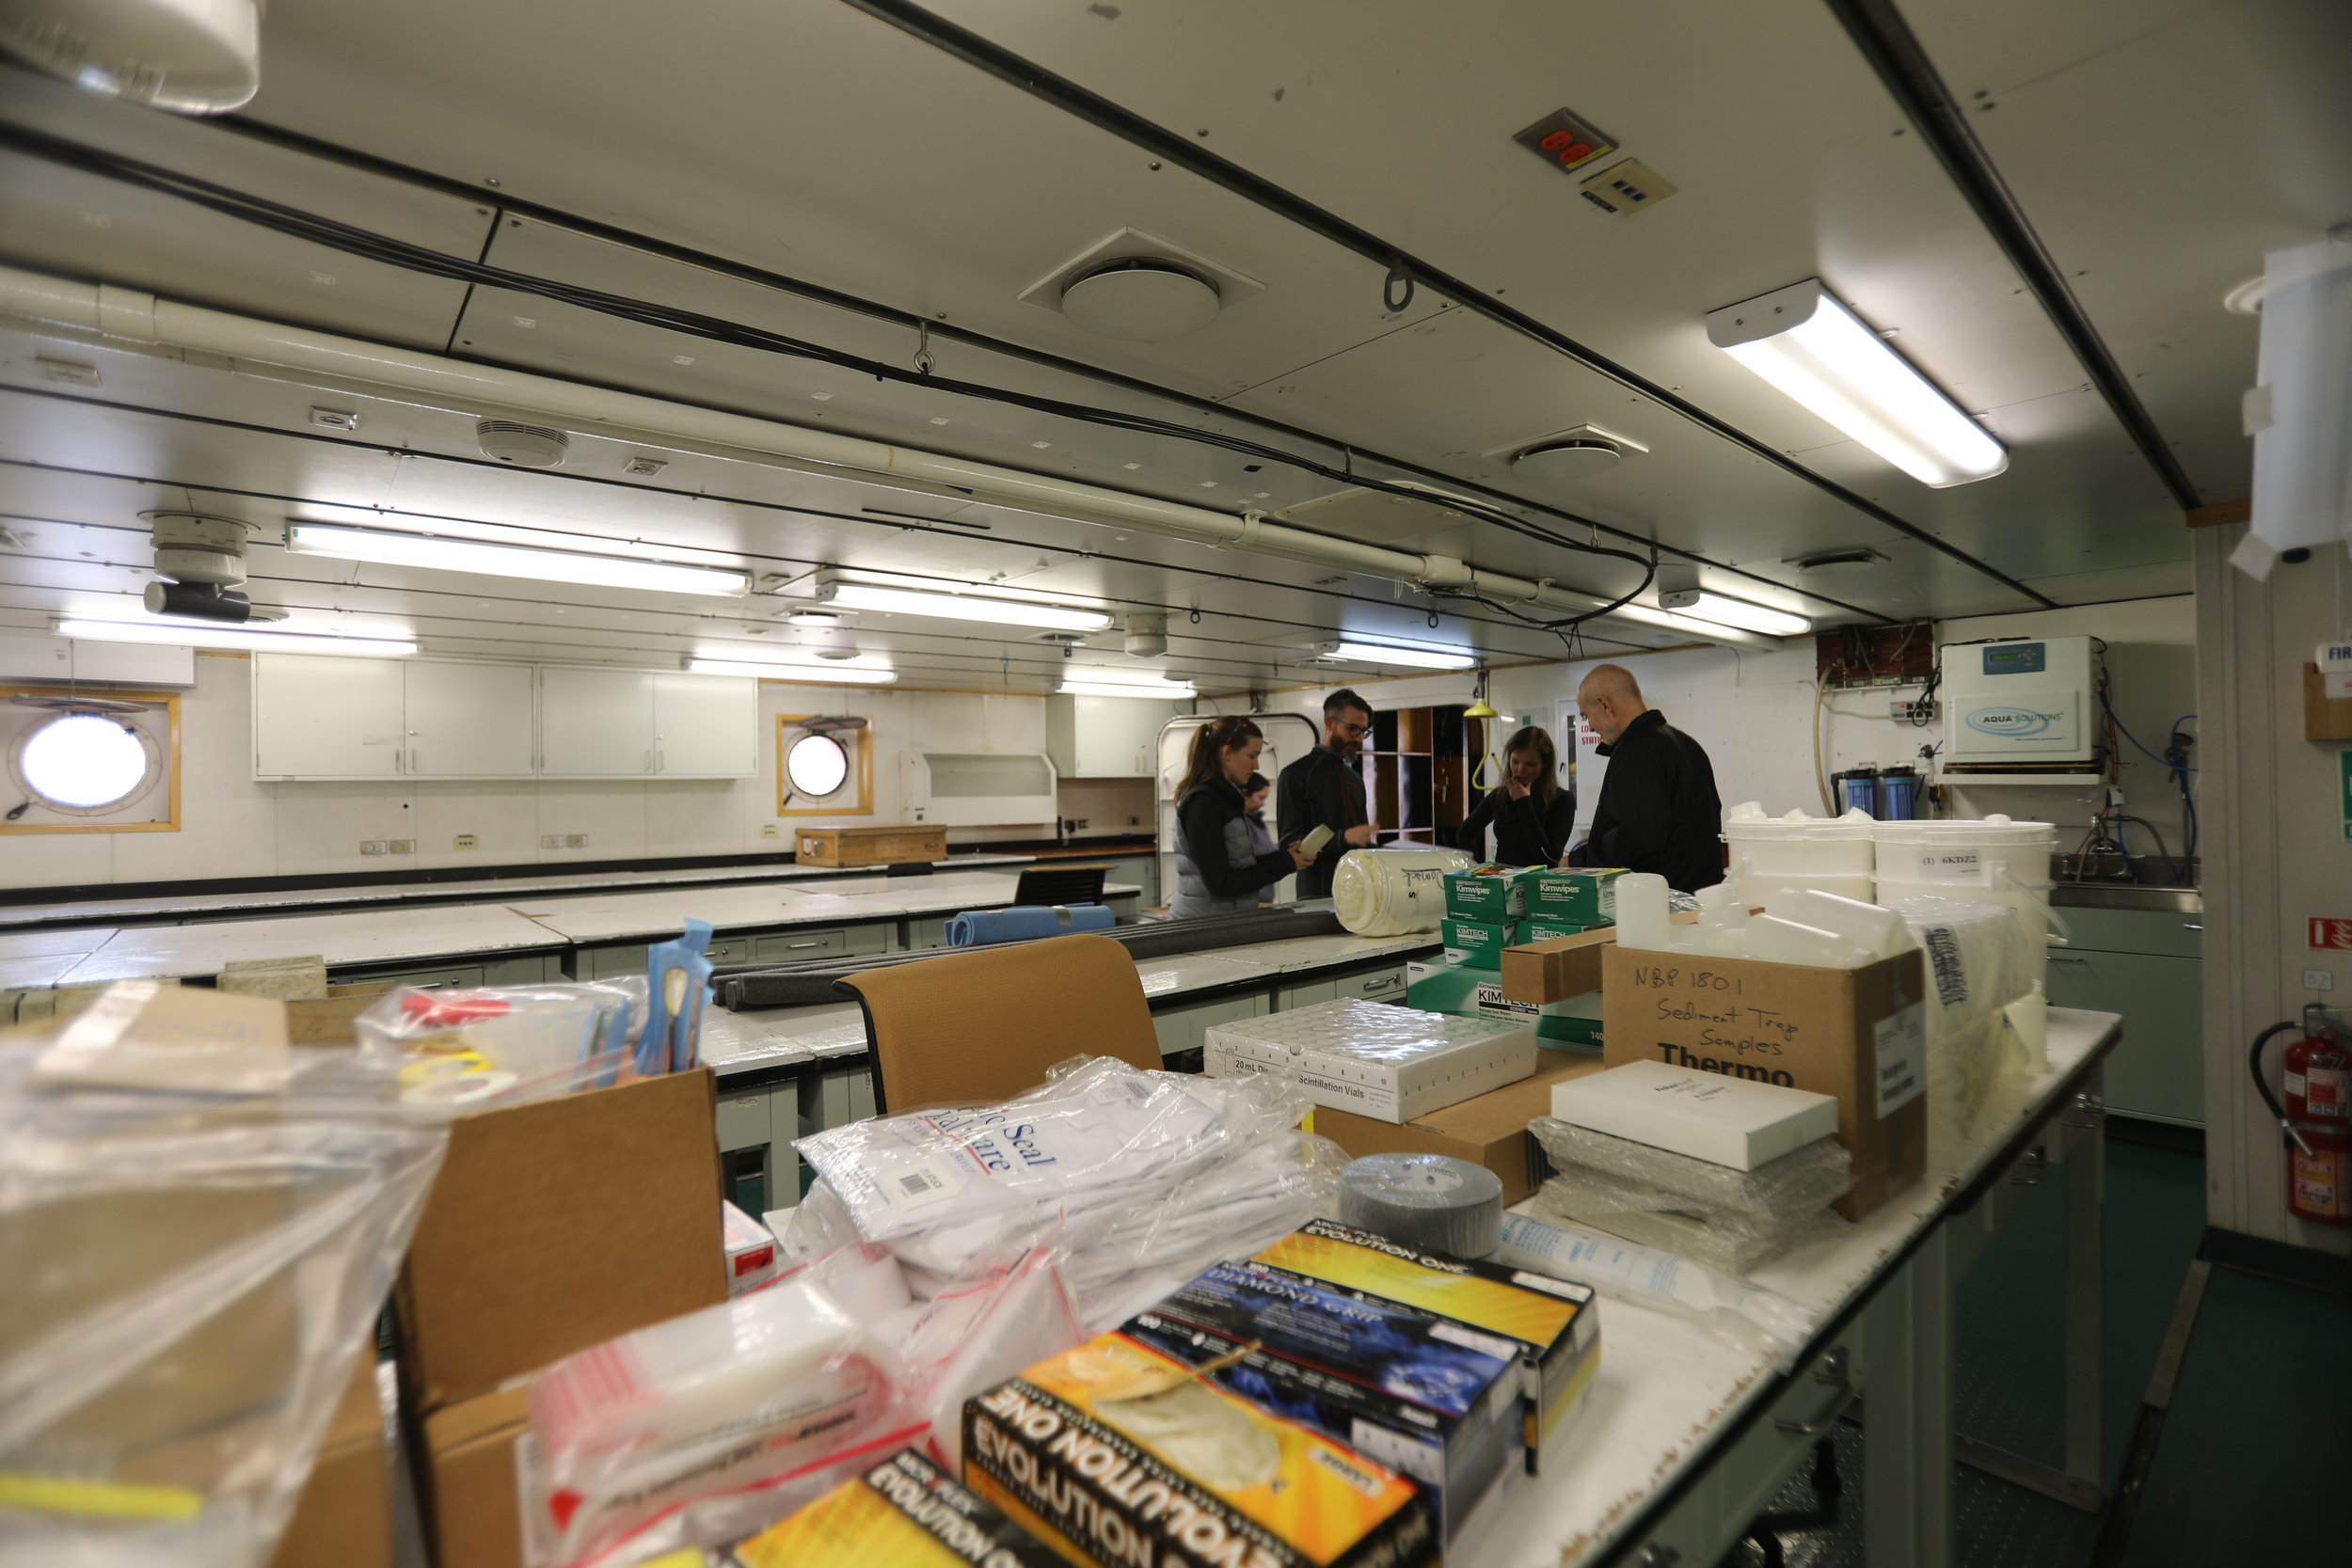 THOR team members (l to r)- Rebecca Totten Minzoni, Alastair Graham, Rachel Clark, Rob Larter- sort through and distribute core processing supplies in the core processing lab. All drawers and cabinets have dog-locks to ensure they do not open during passage through rough seas.